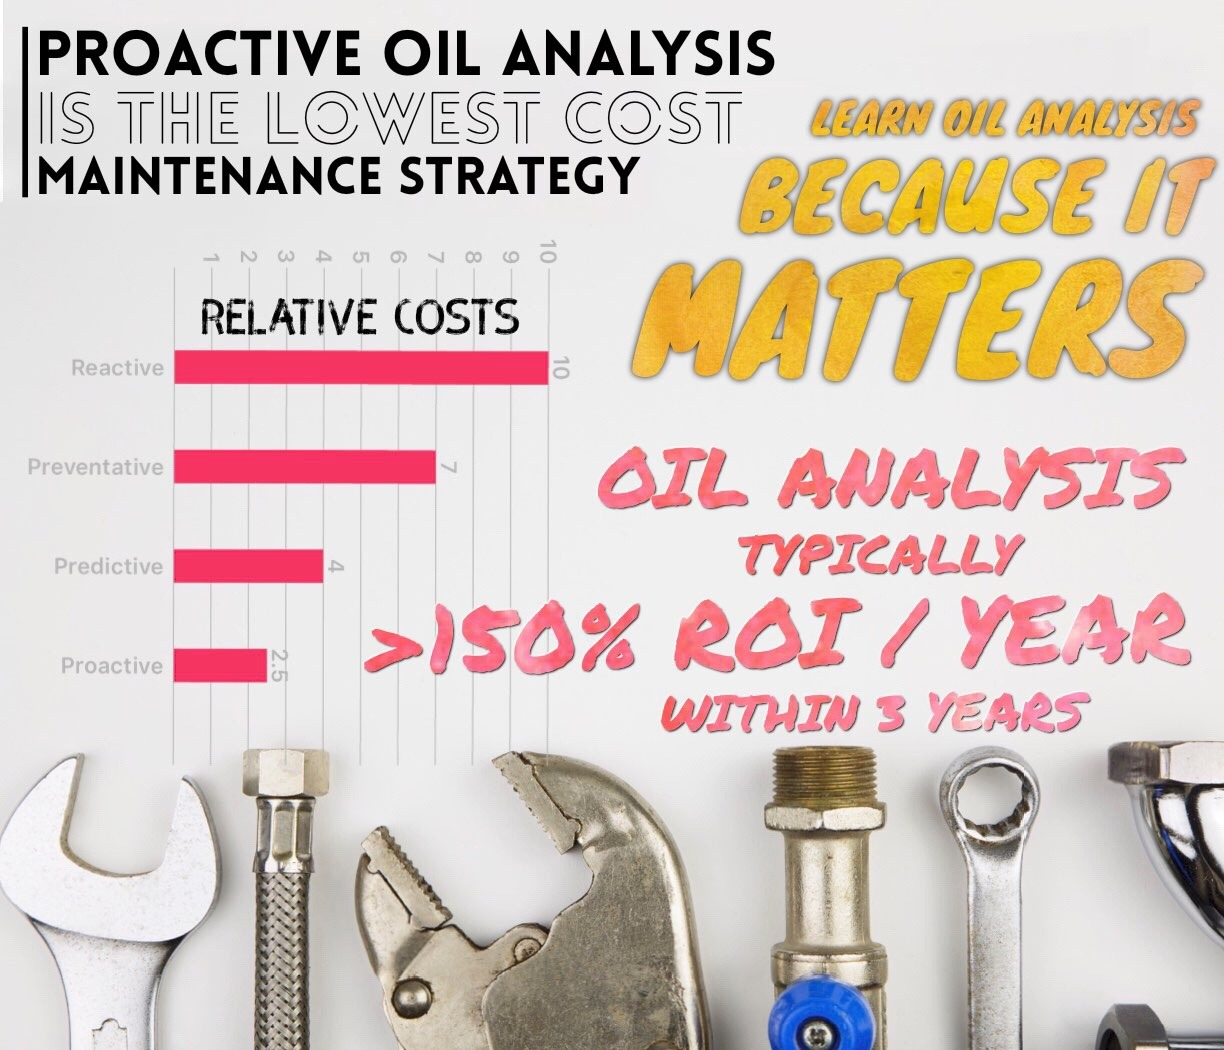 53ea53e3 1f78 4e96 82ff ebbc60f30b1cl0001 img 2250.png Learn used oil analysis sample testing, lubrication reliability maintenance, predictive lab diagnostics to reduce costs & boost profits.